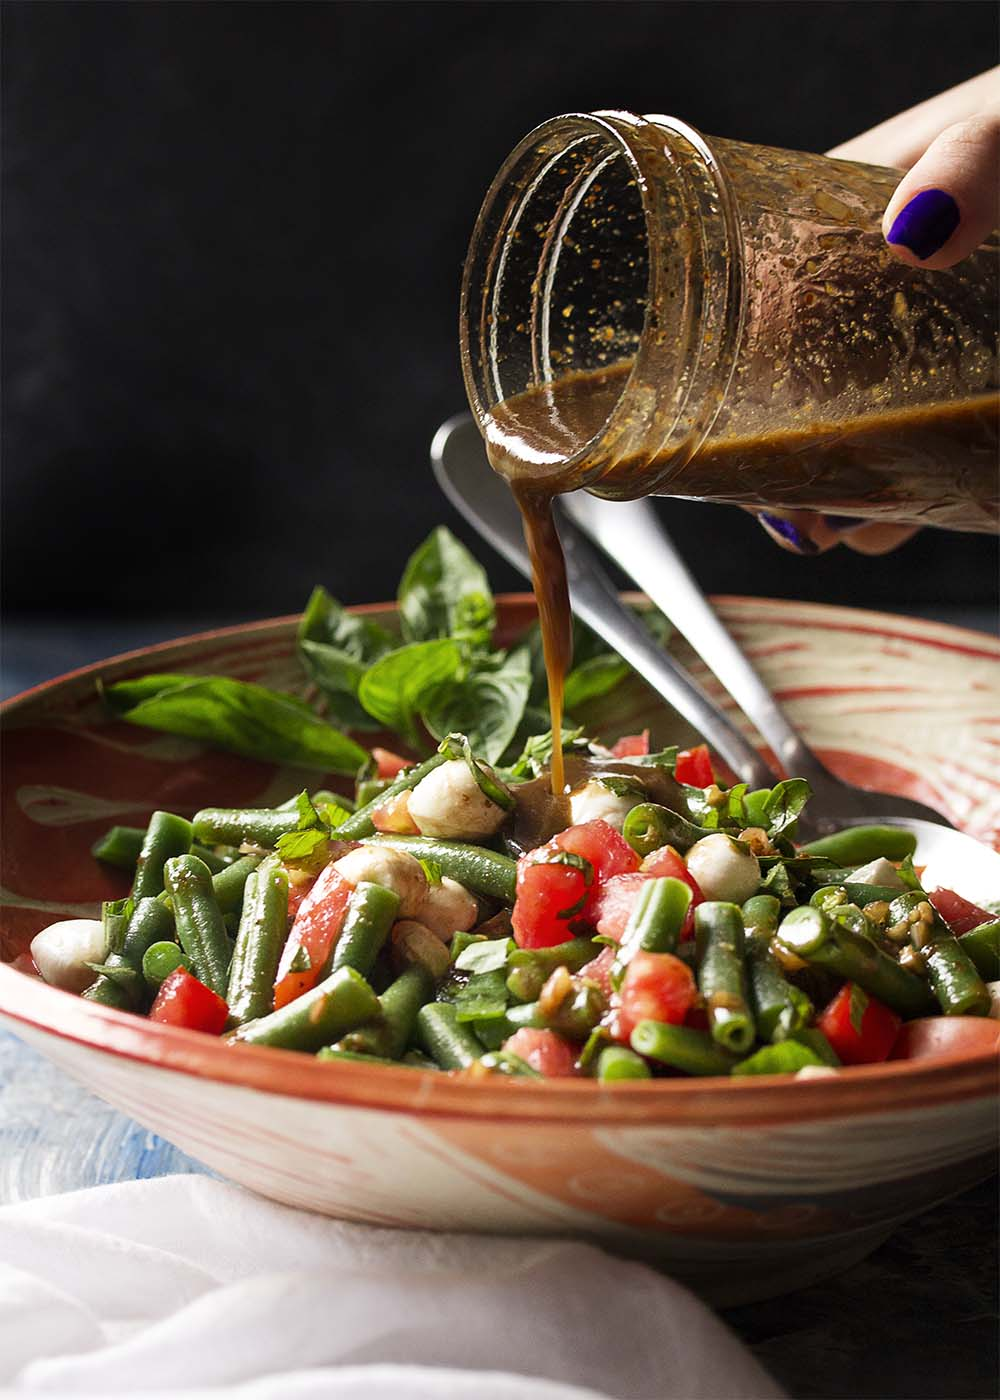 Pouring basamic vinaigrette onto a bowl of Italian green bean and tomato salad.